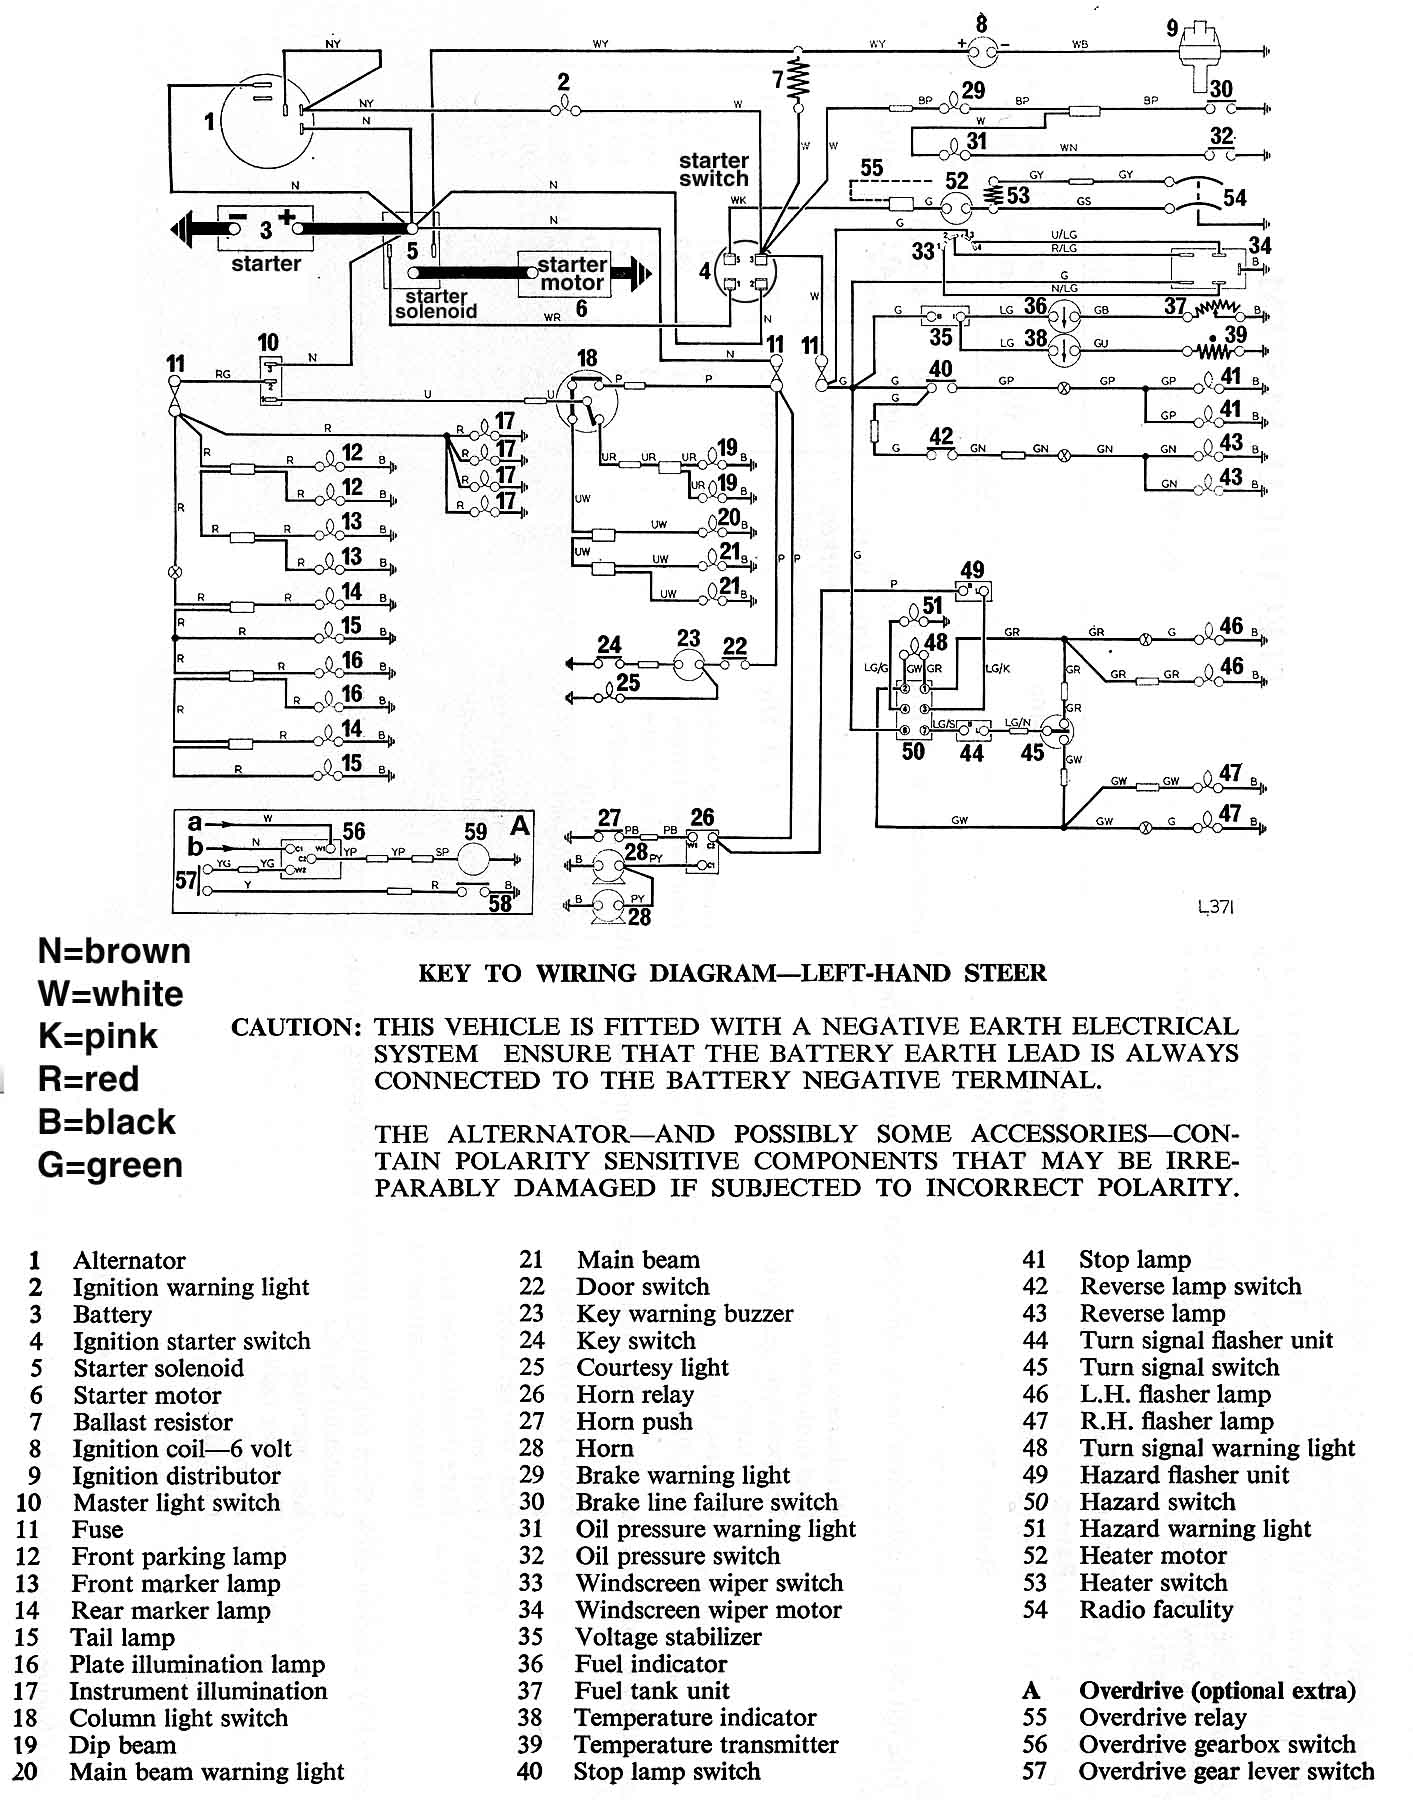 MKIVwire wiring schematics and diagrams triumph spitfire, gt6, herald 1978 triumph spitfire wiring diagram at n-0.co